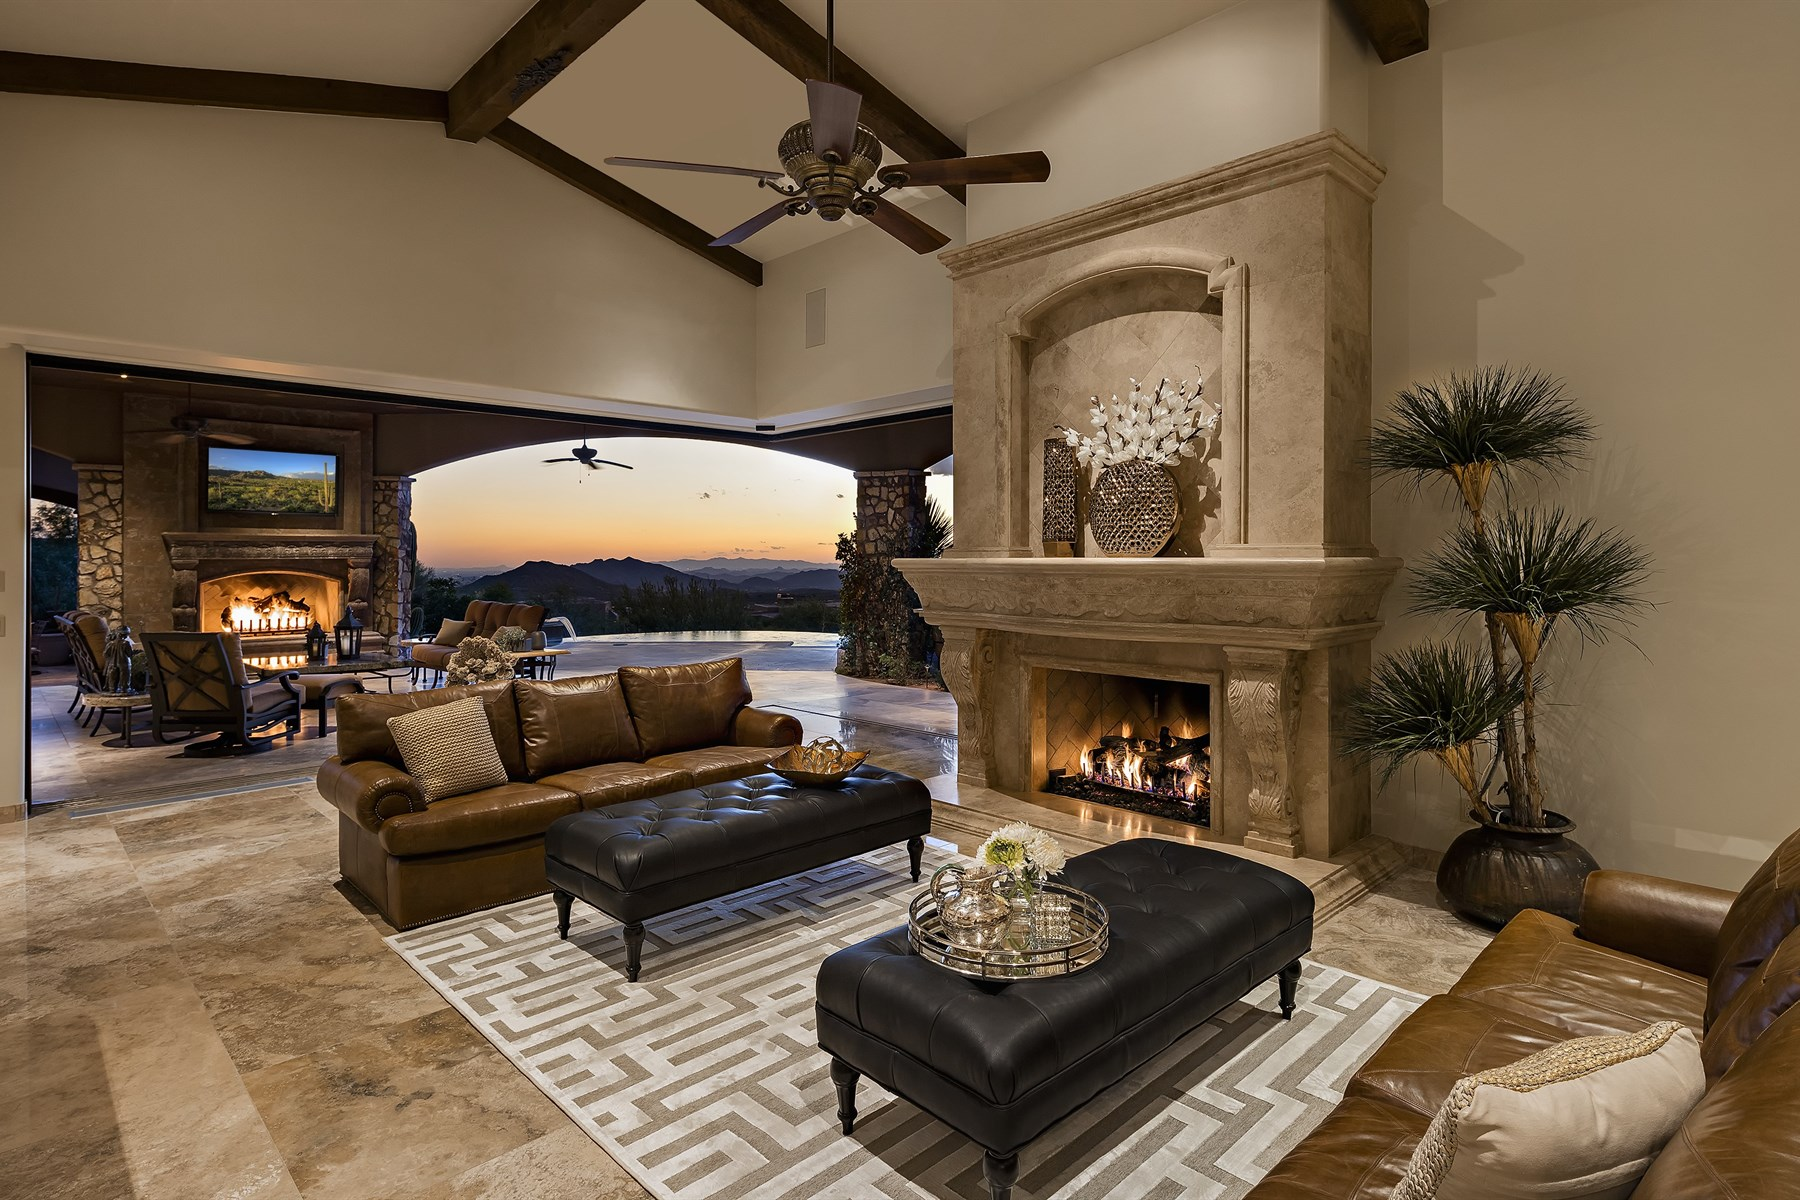 Casa Unifamiliar por un Venta en Warmth and elegance greet you at the front door with putting green and waterfall 42145 N 111th Place Scottsdale, Arizona, 85262 Estados Unidos